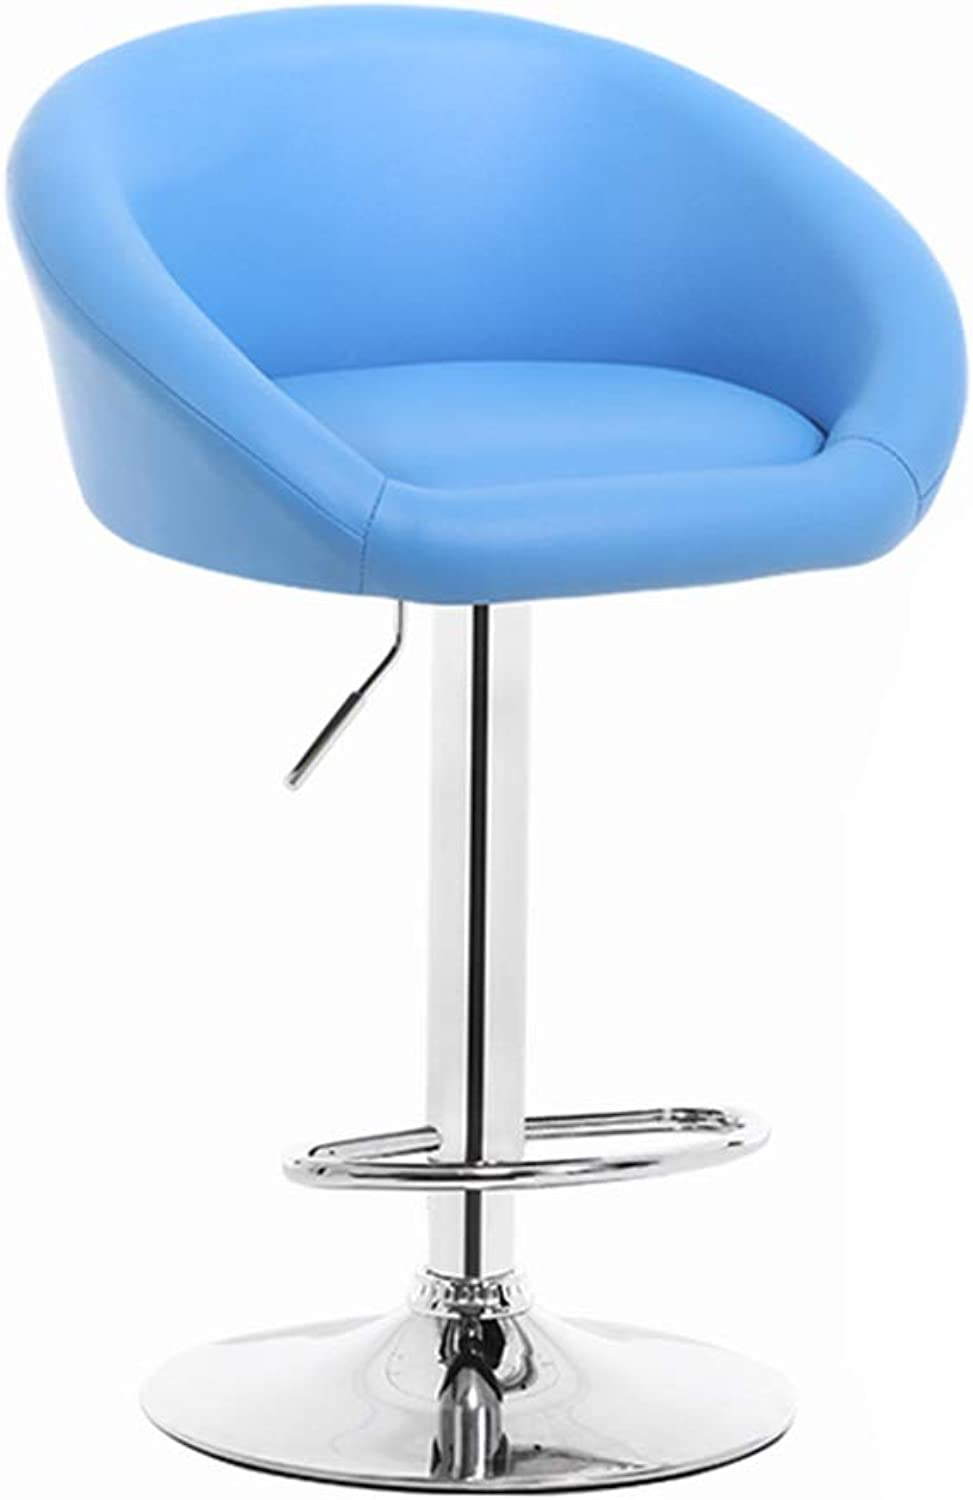 LIQICAI Tall Bar Stools Adjustable Bar Chairs with Back PU Leather Swivel Bar Stool Kitchen Counter Stools Dining Chairs, 5 colors (color   bluee)